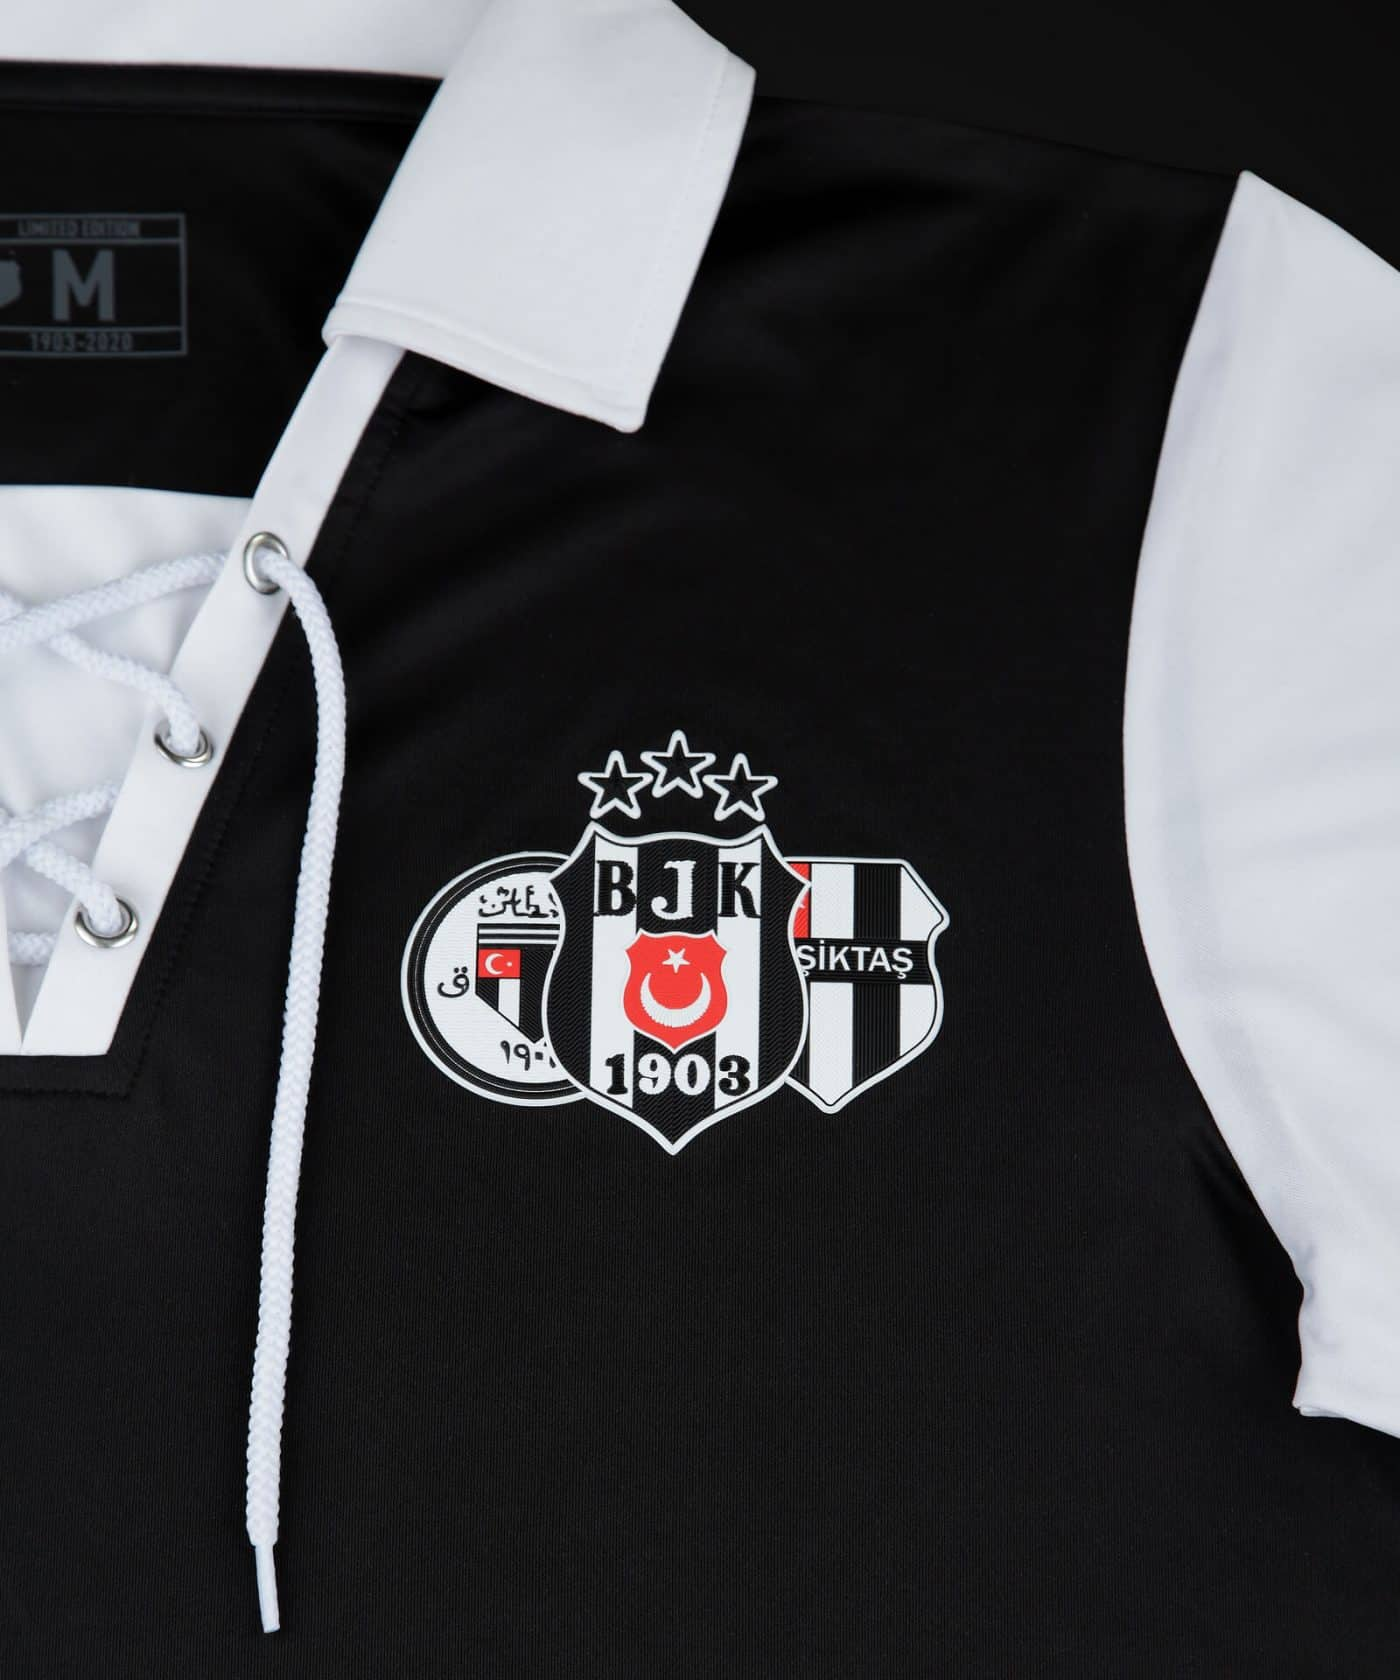 maillot-anniversaire-besiktas-istanbul-117-ans-2